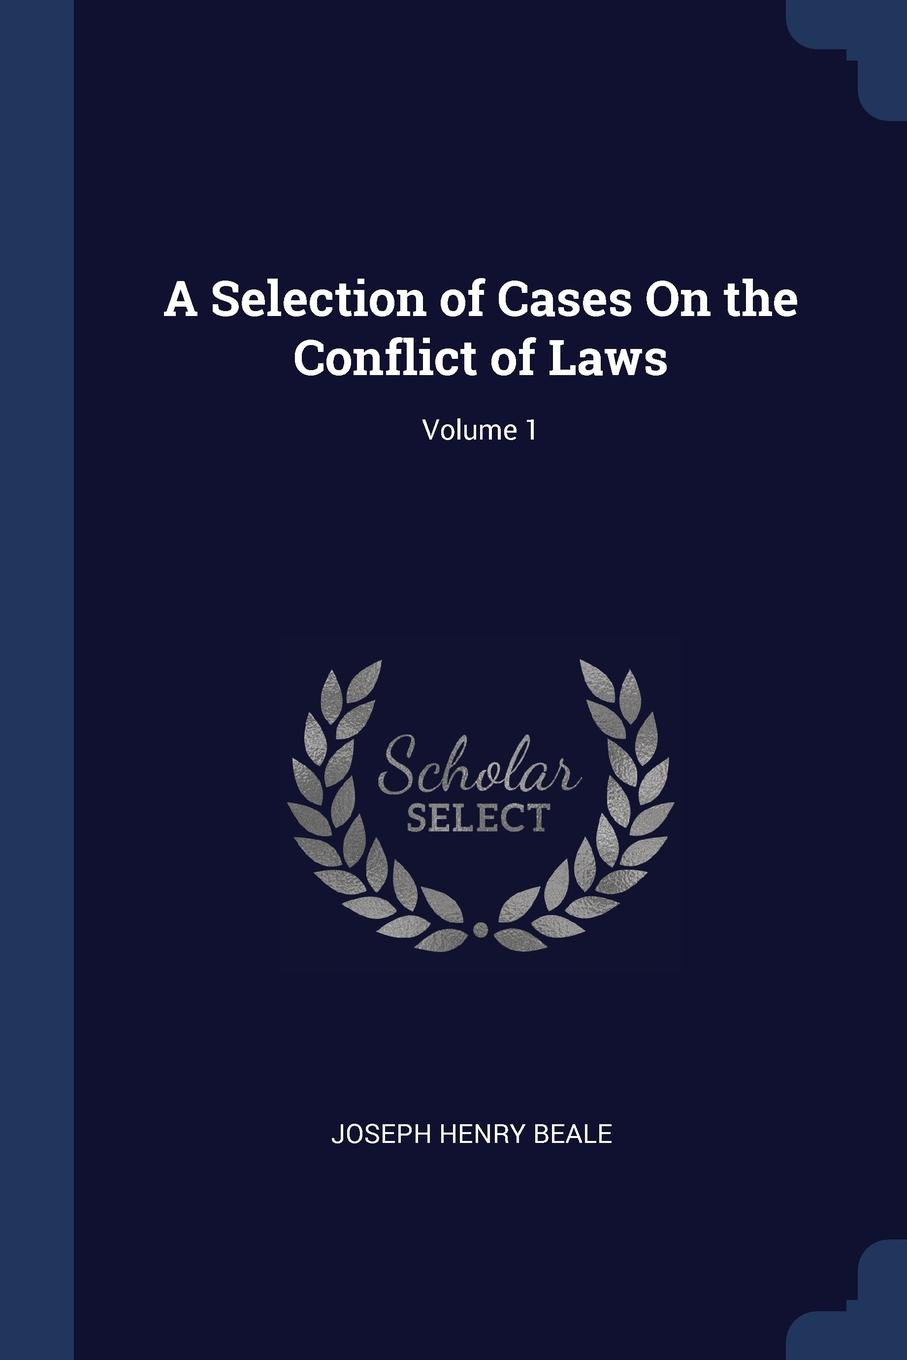 Joseph Henry Beale A Selection of Cases On the Conflict Laws; Volume 1